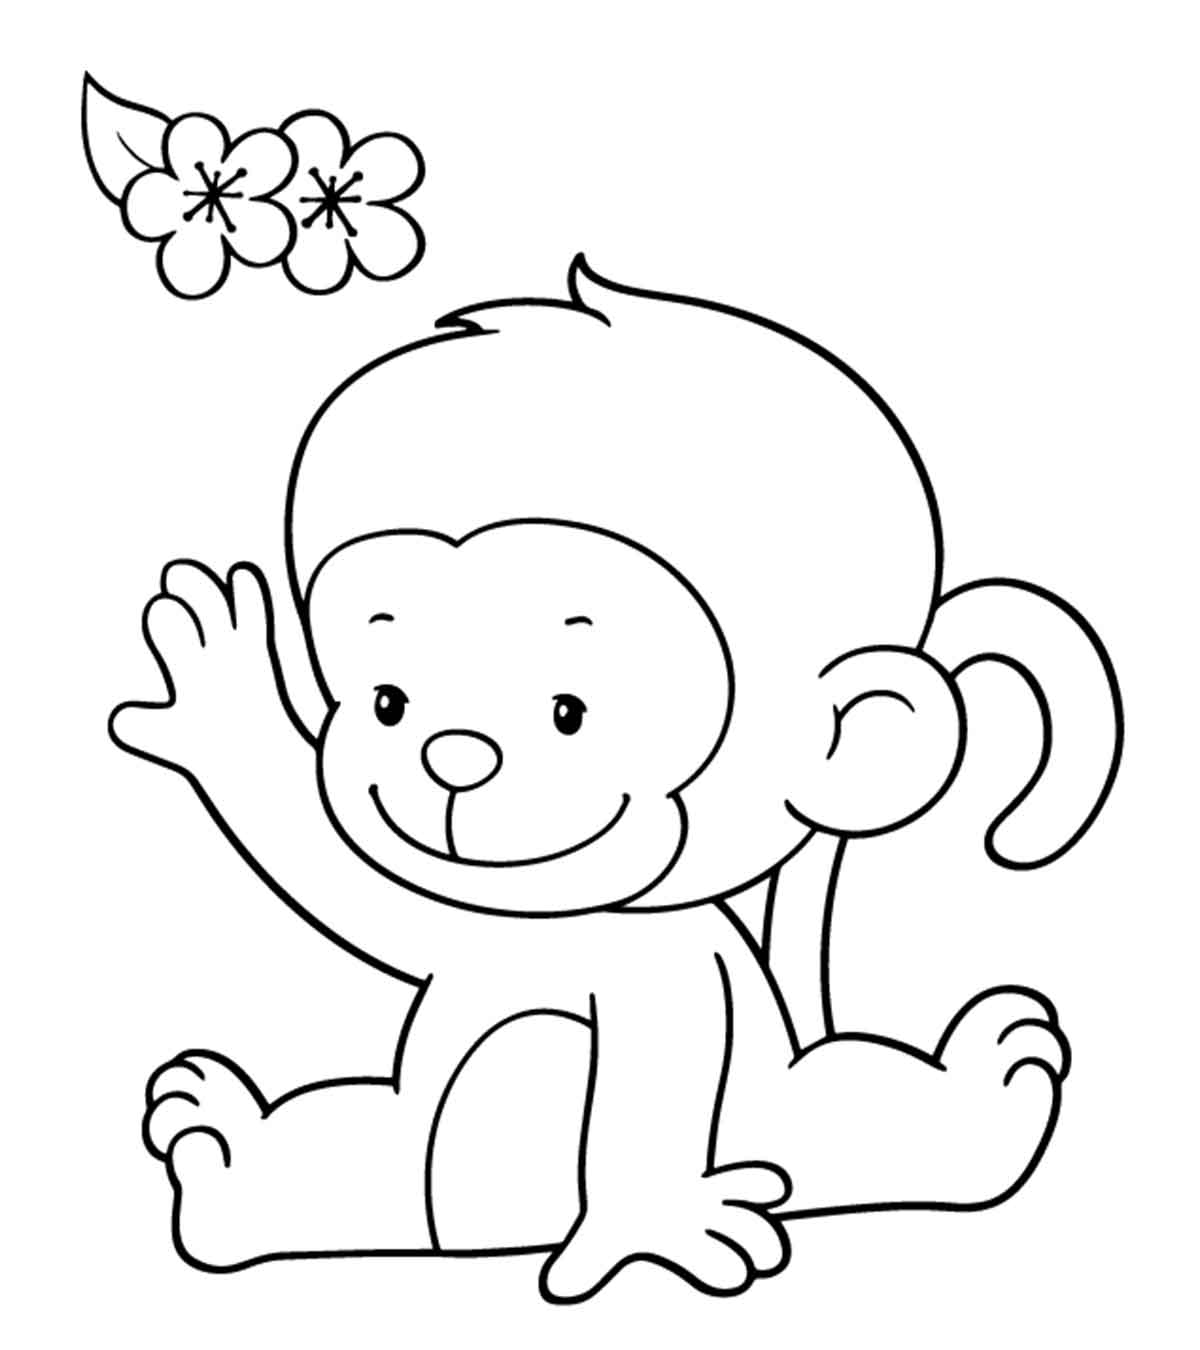 cute monkey coloring pages easy and hard coloring pages of monkeys 101 activity cute pages coloring monkey